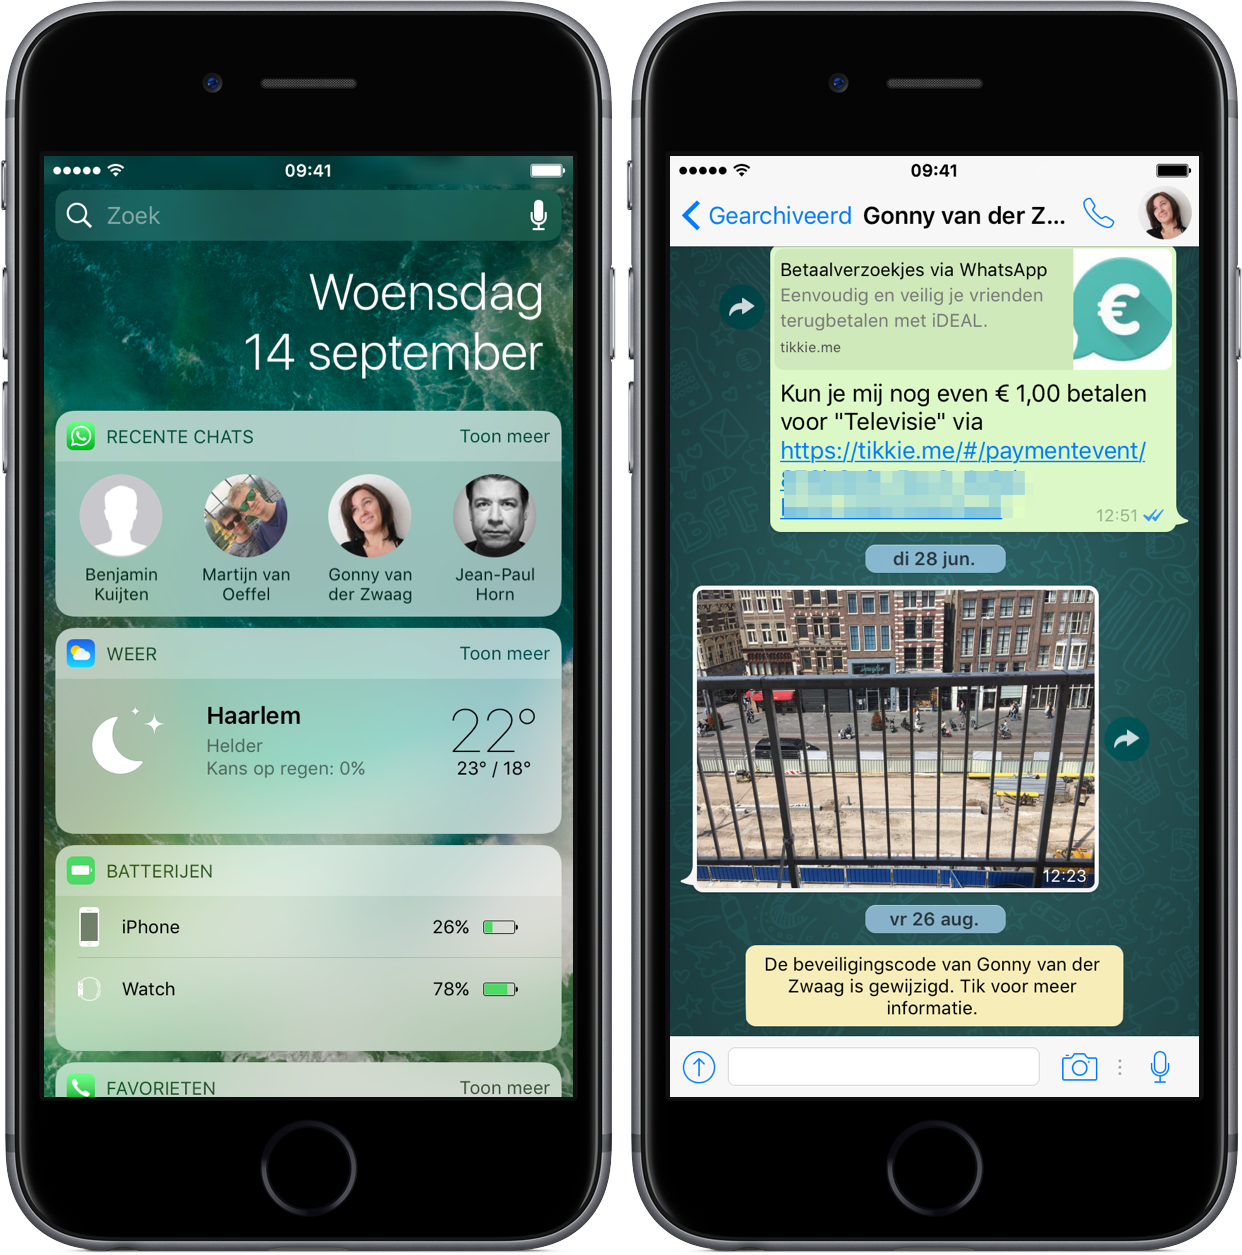 WhatsApp-widget en doorstuurknop.